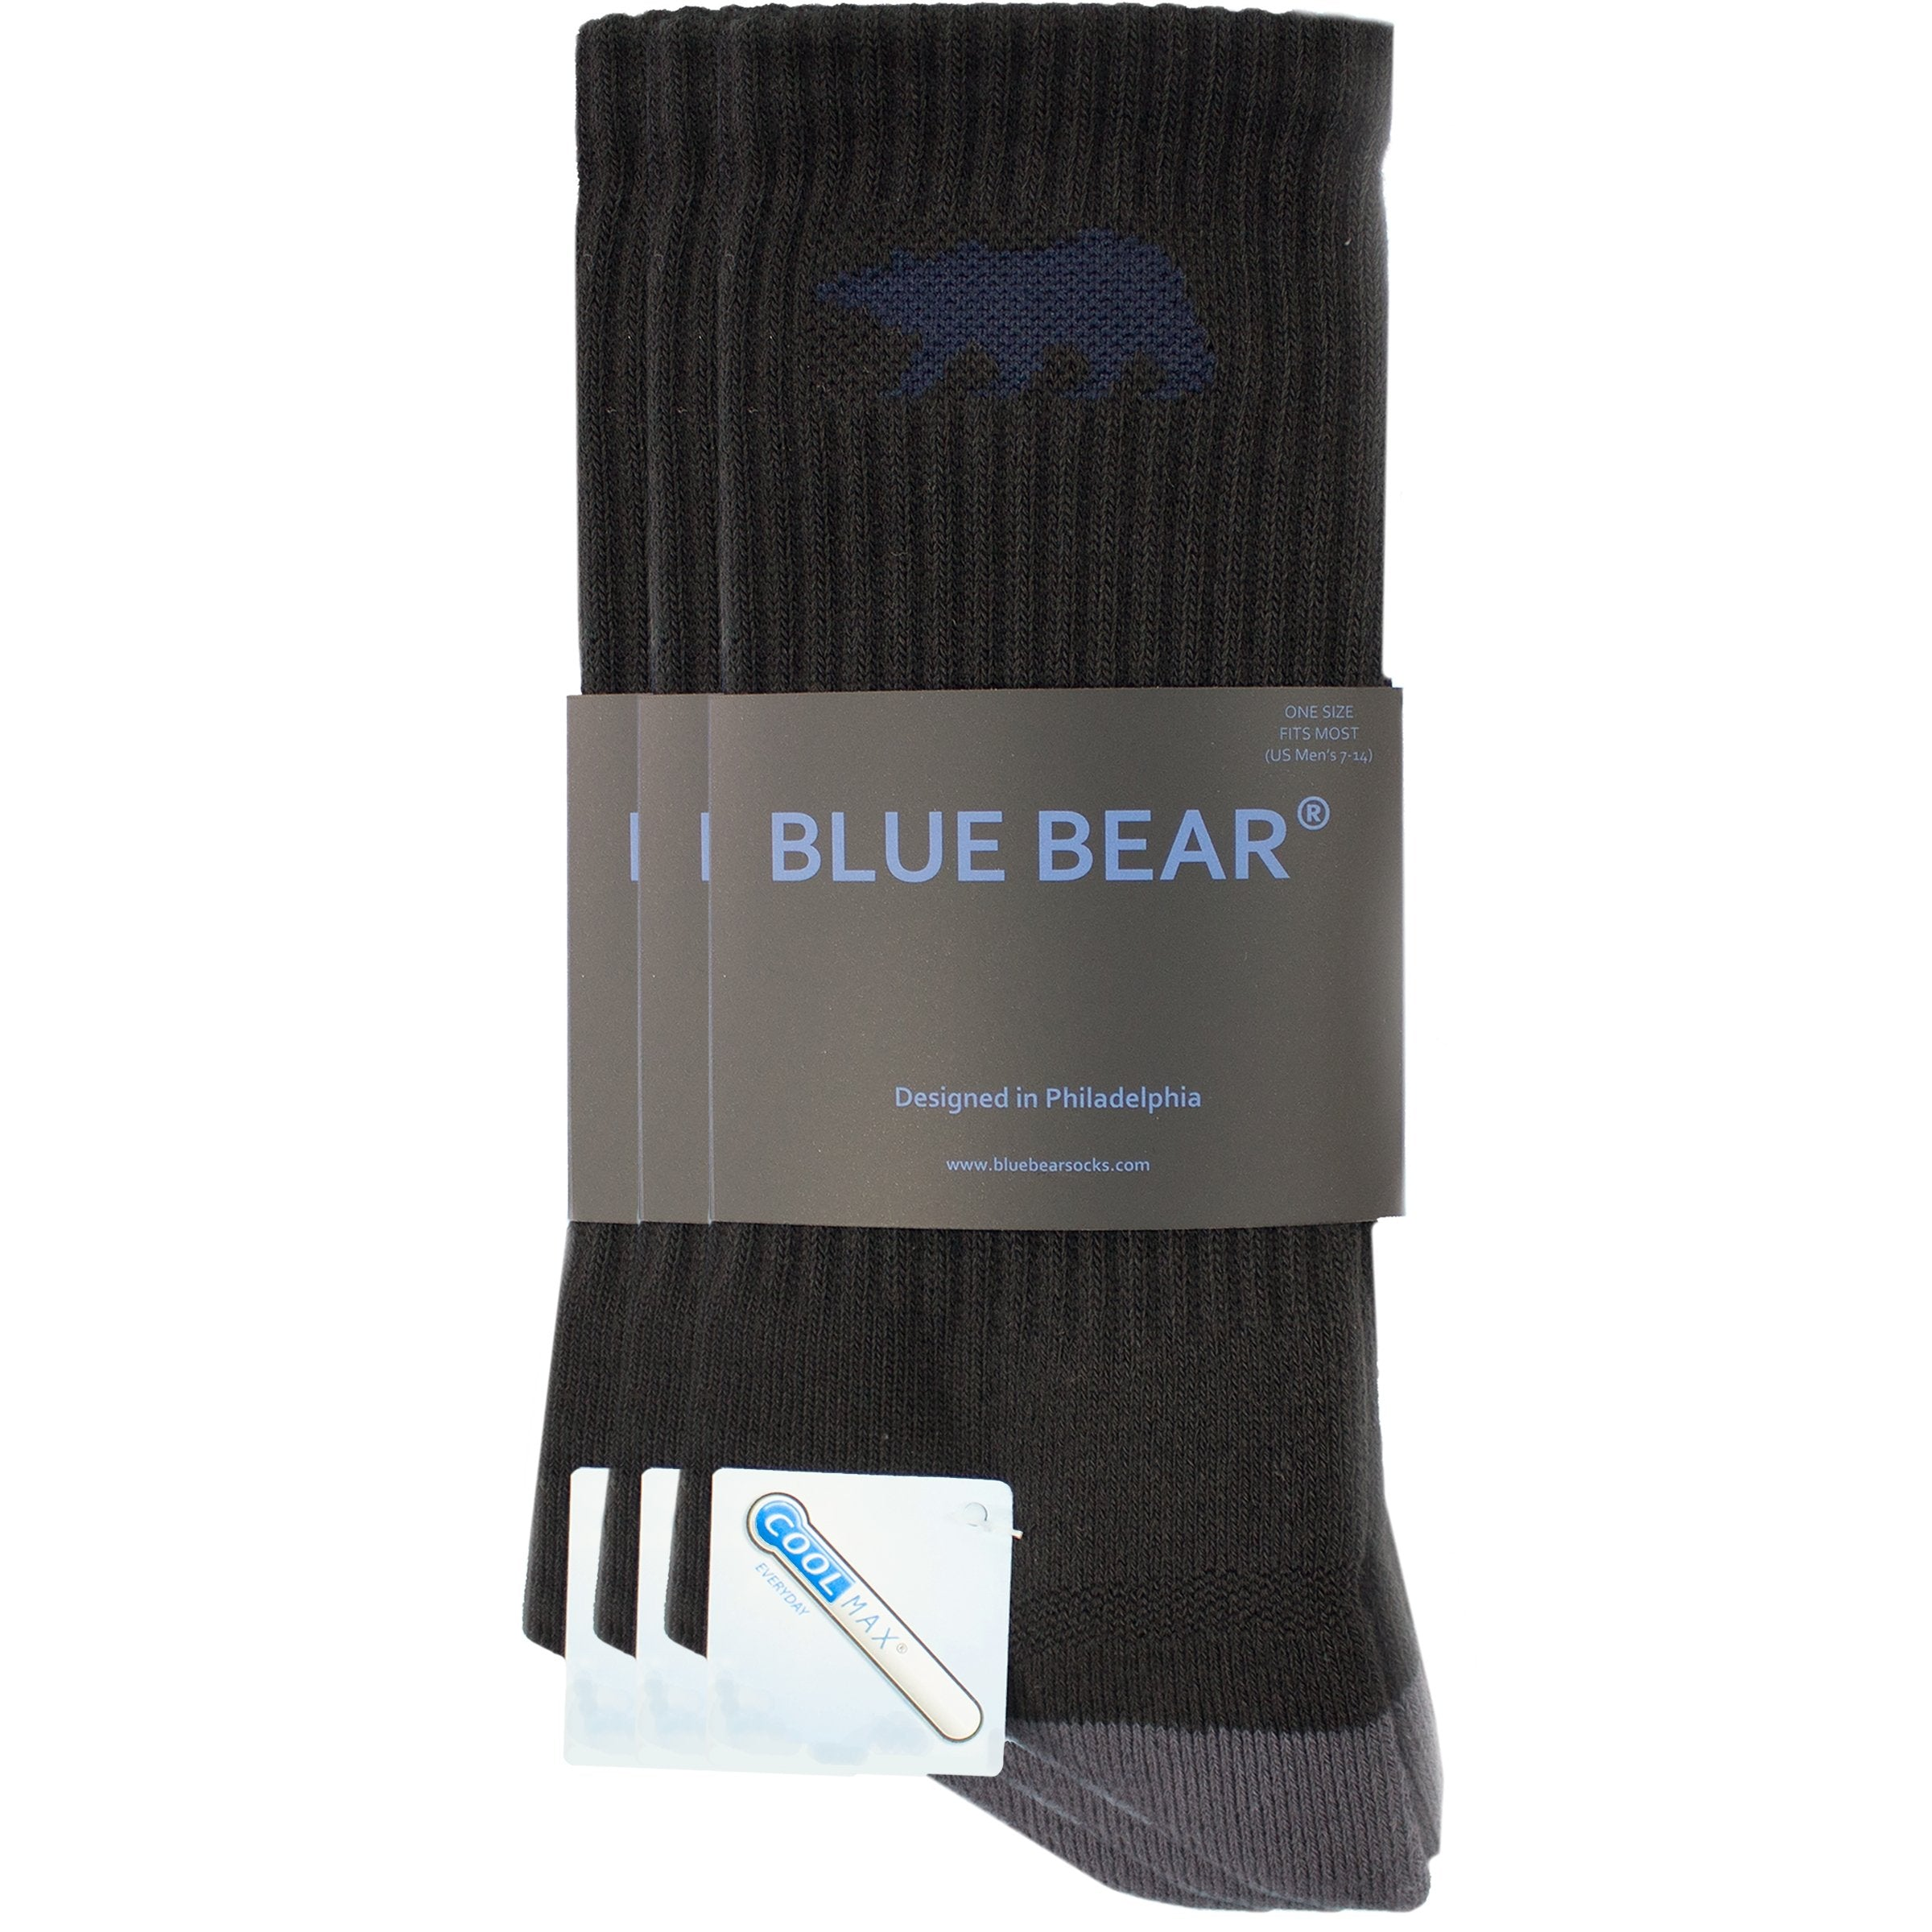 Men's Performance All-Purpose Crew Socks - 3 Pack - Blue Bear Socks